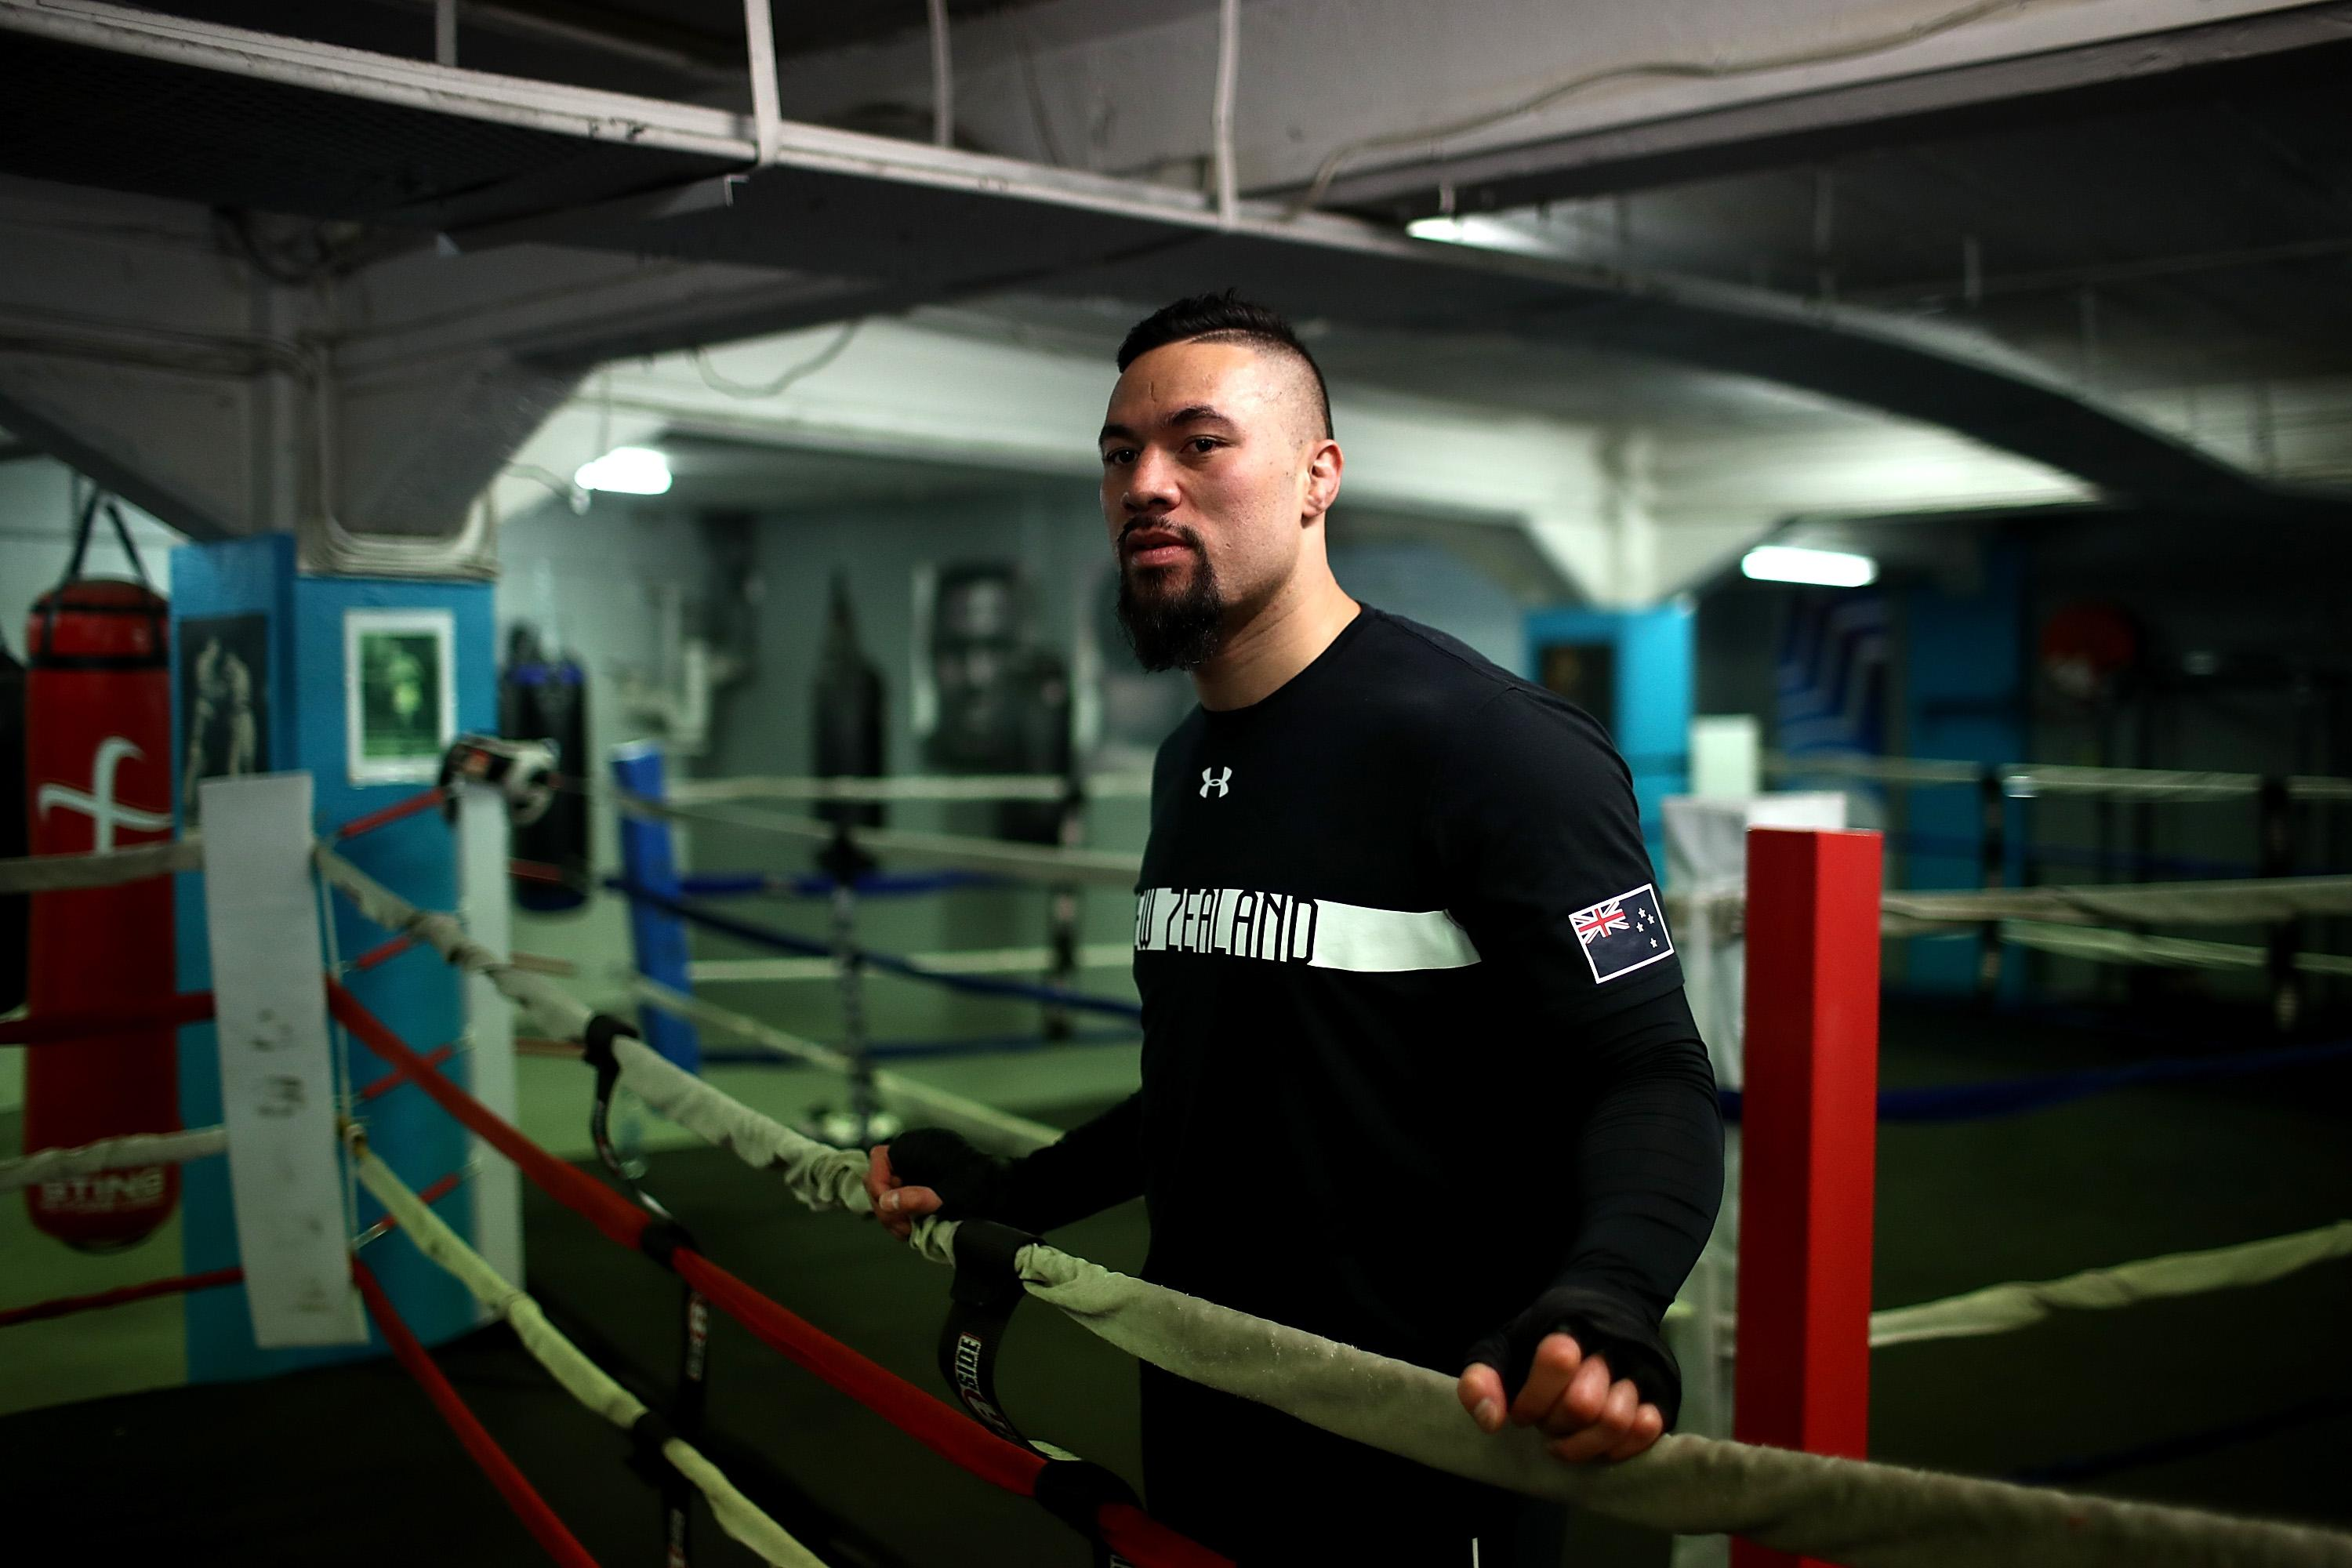 Joseph Parker has banned handshakes in London to avoid GERMS